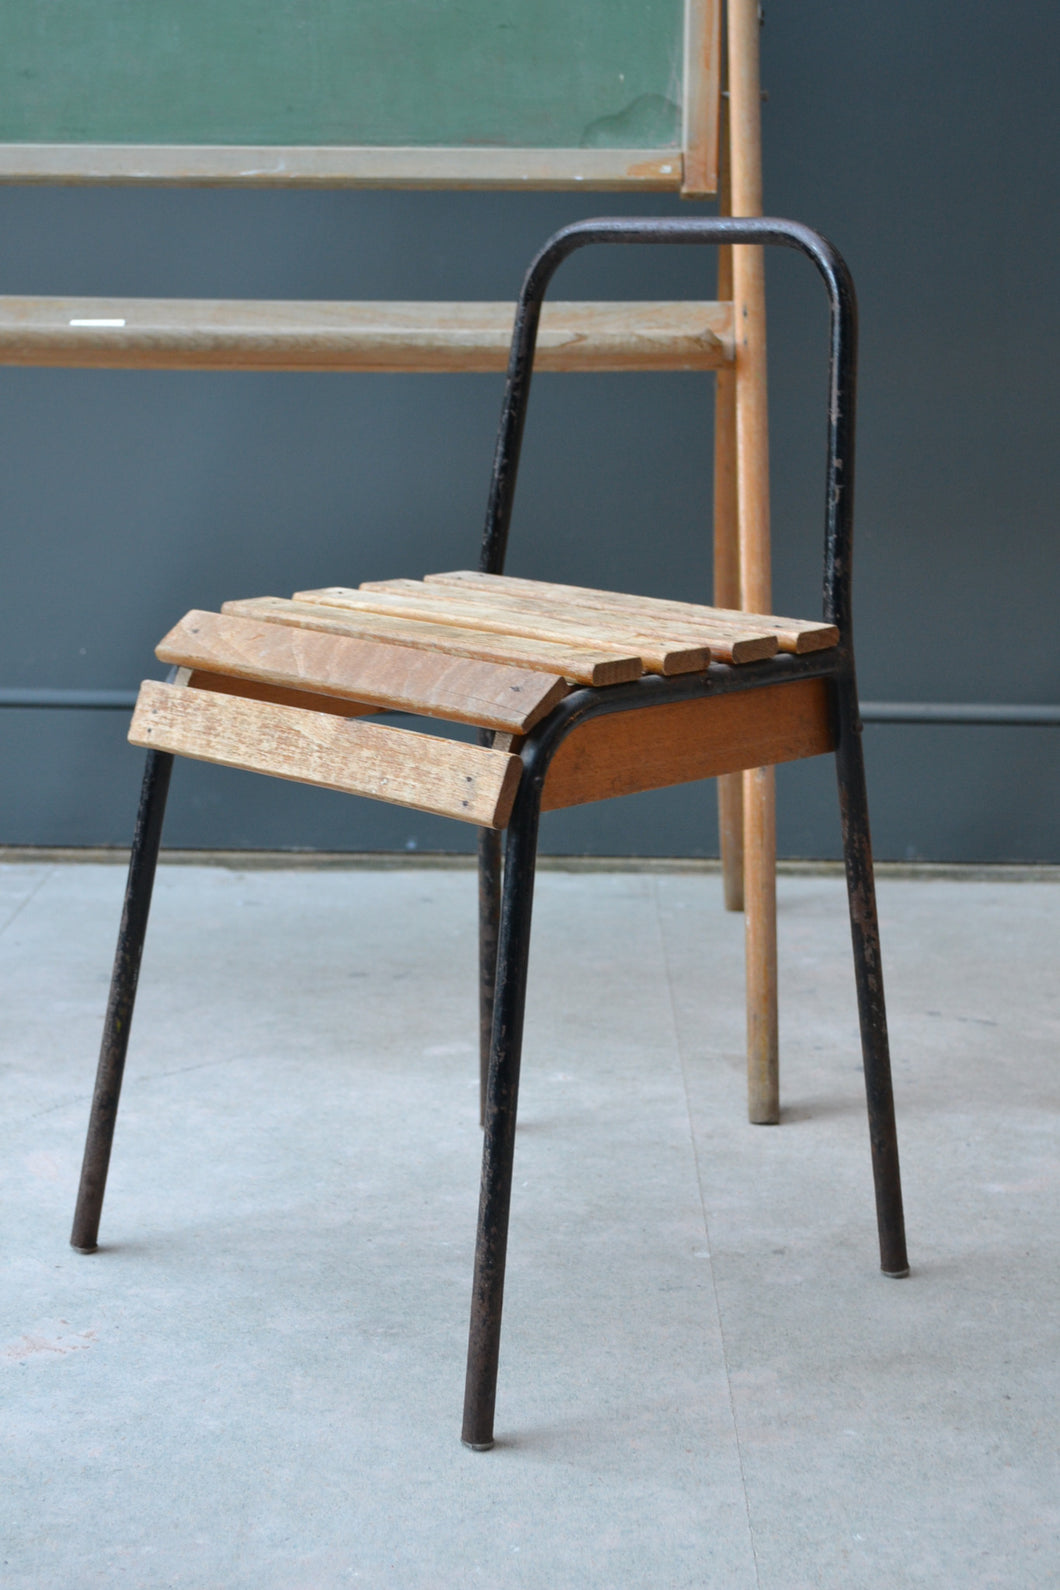 Vintage 1940's 50's Child's Chair - SOLD OUT